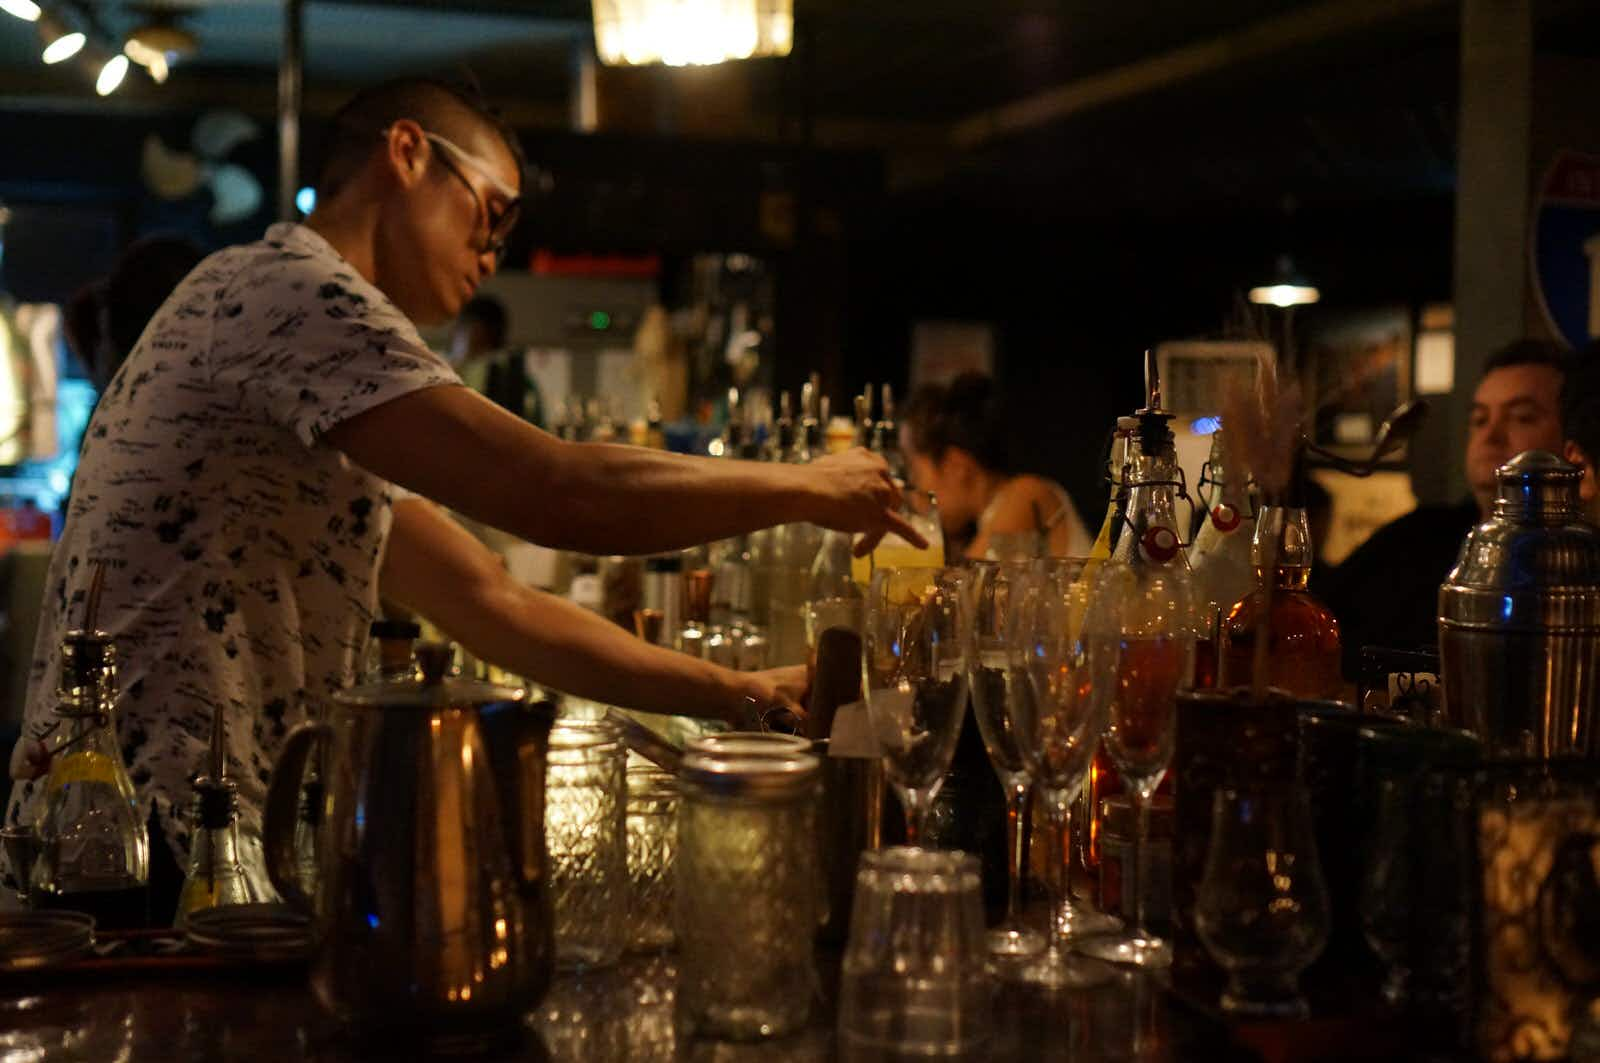 Behind closed doors: 10 of Seoul's most glamorous speakeasies